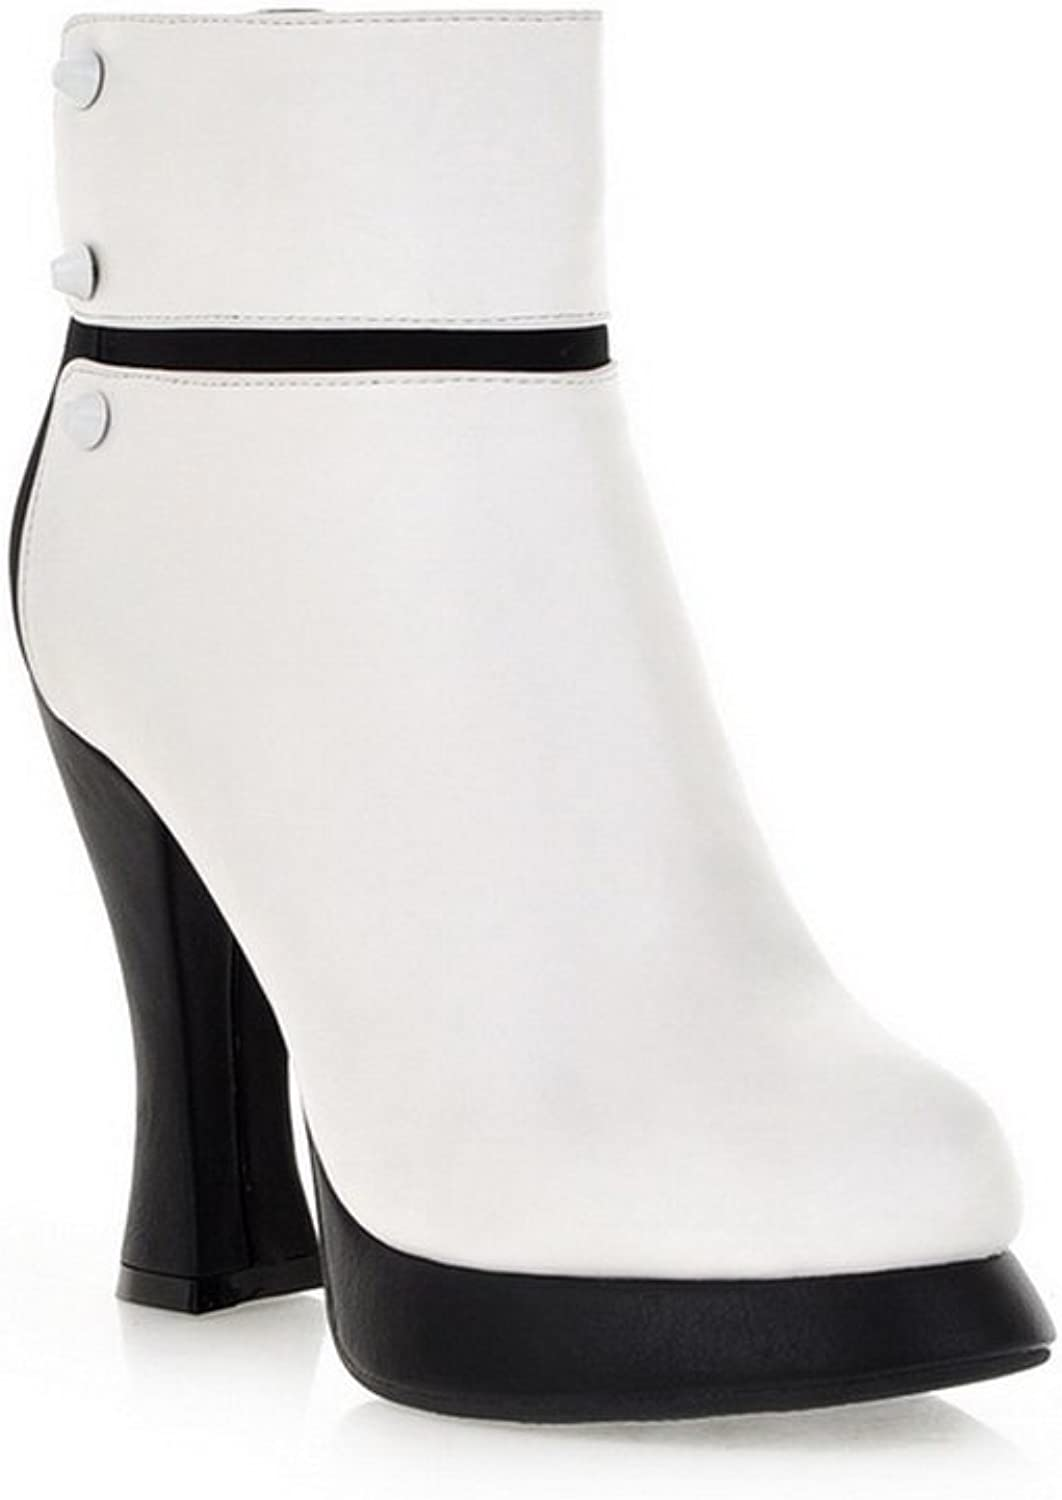 A&N Girls Chunky Heels Two-Toned Platform Soft Material Boots